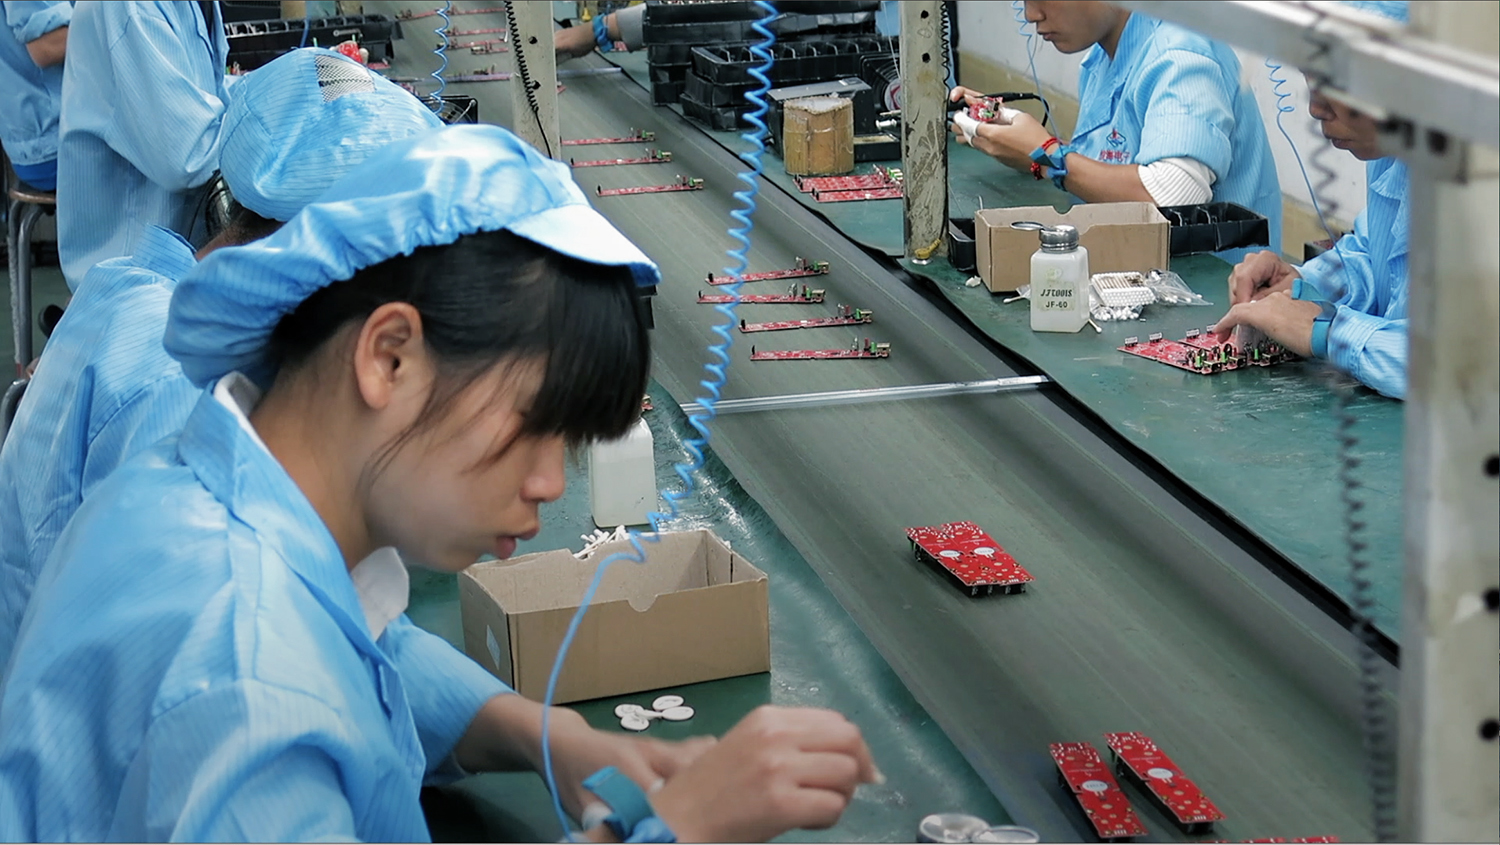 Undercover footage of Chinese workers making our electronics. They often work 12 hours a day, 7 days a week with few breaks and strict oversight of every move they make.